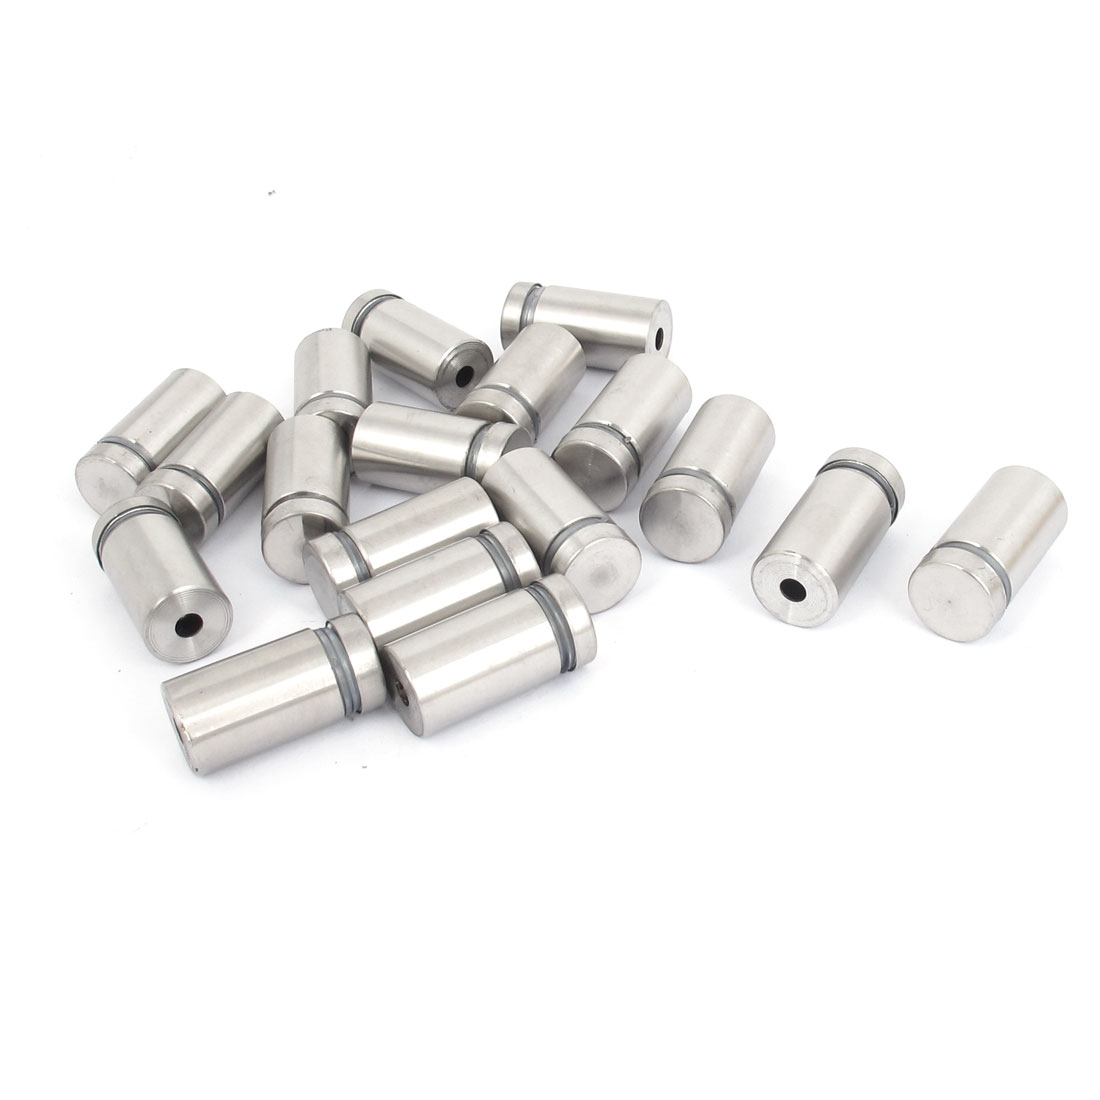 16mm x 30mm Stainless Steel Advertising Frameless Glass Standoff Pins 18pcs